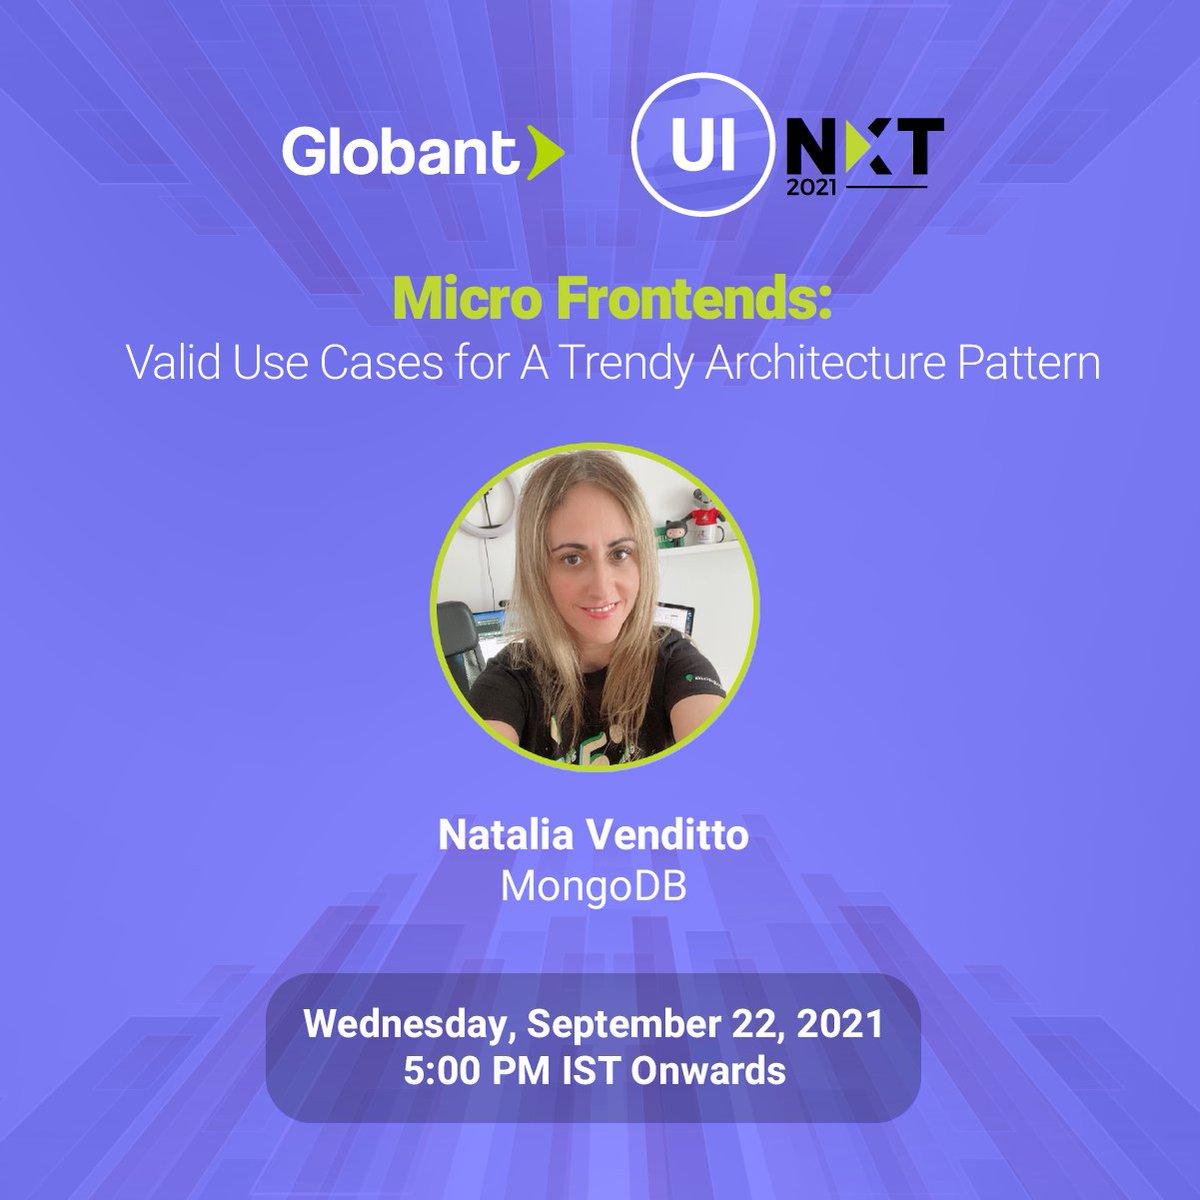 Micro Frontends: Valid Use Cases for A Trendy Architecture Pattern #uinxt #microfrontends #globant #uitrends #MongoDB